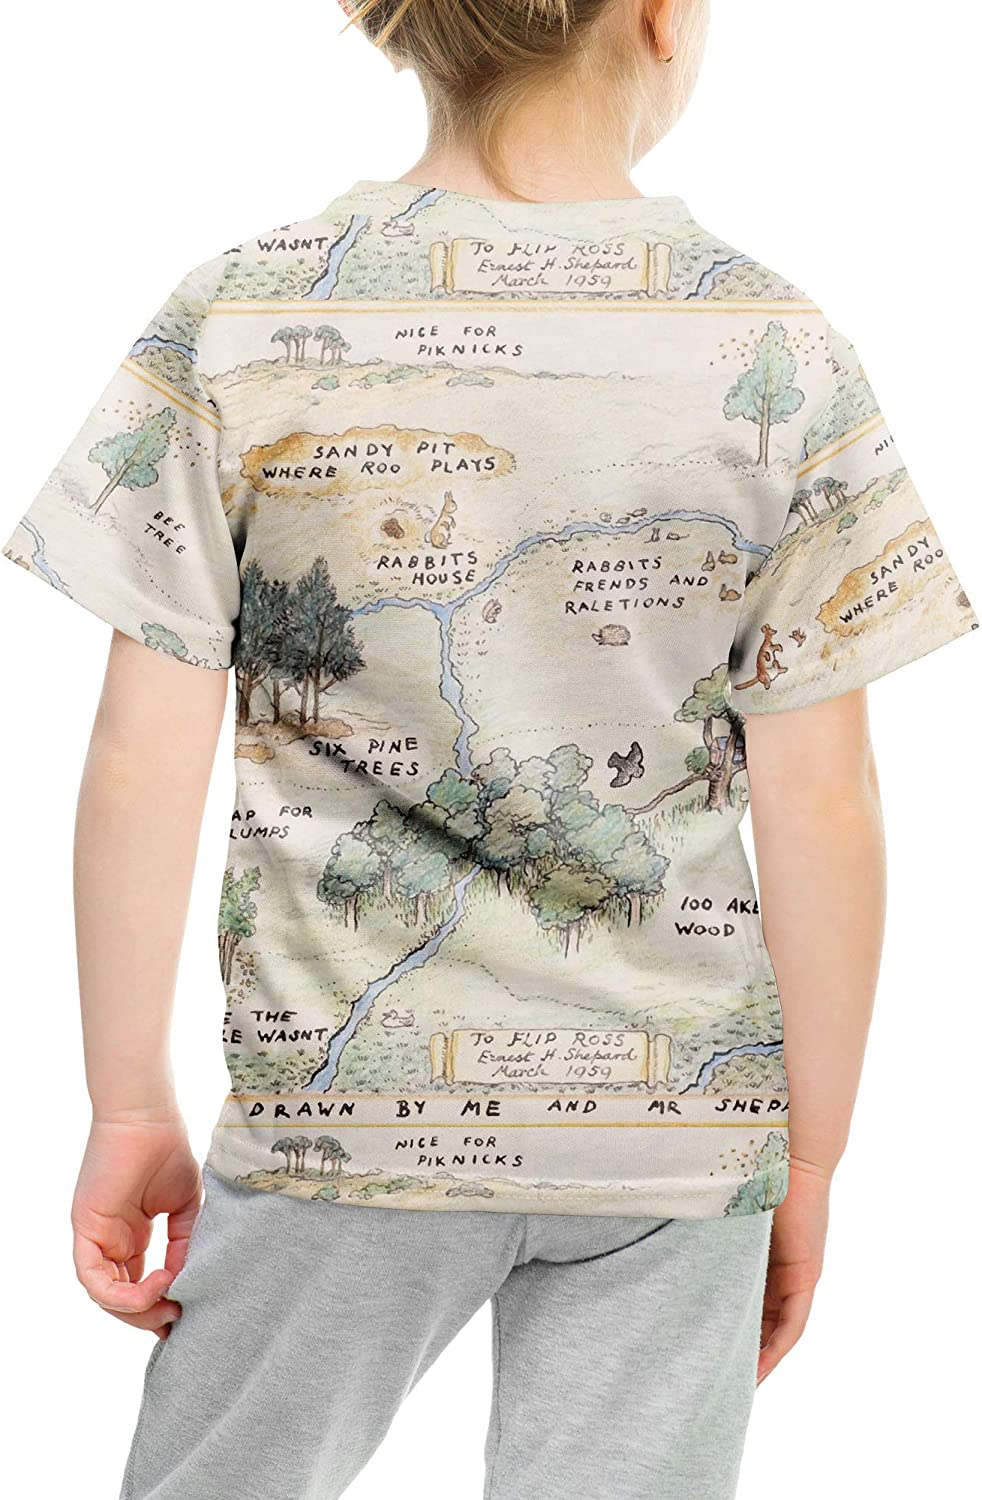 Rainbow Rules Hundred Acre Wood Map Winnie The Pooh Inspired Kids Cotton Blend T-Shirt Unisex